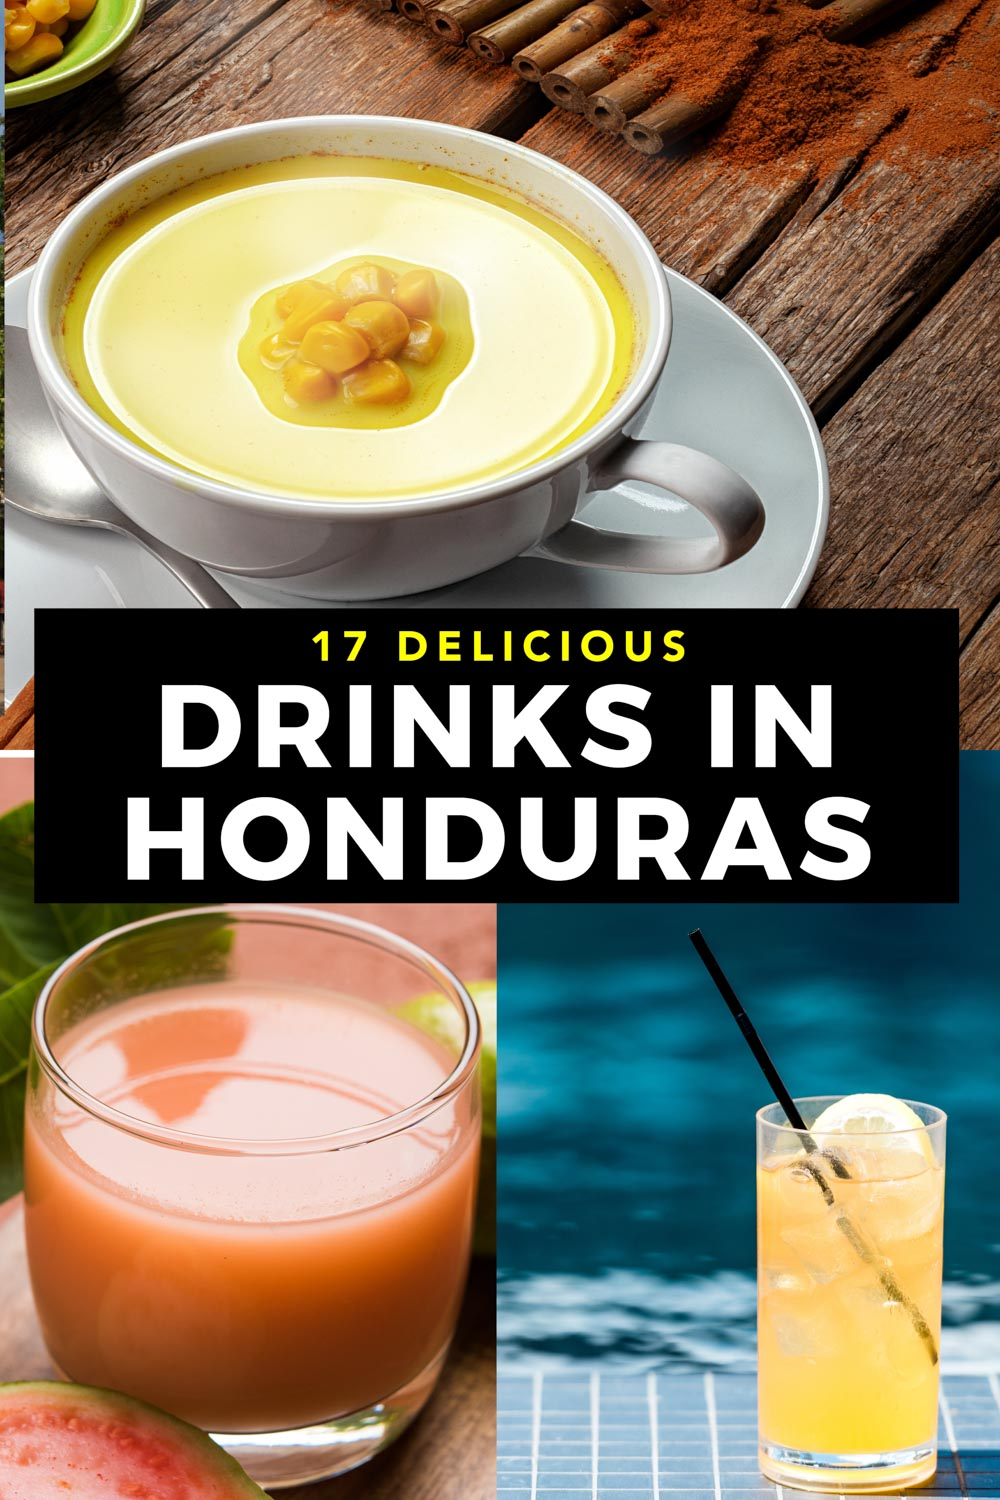 Collage of traditional Honduran drinks with text that says 17 delicious drinks in Honduras